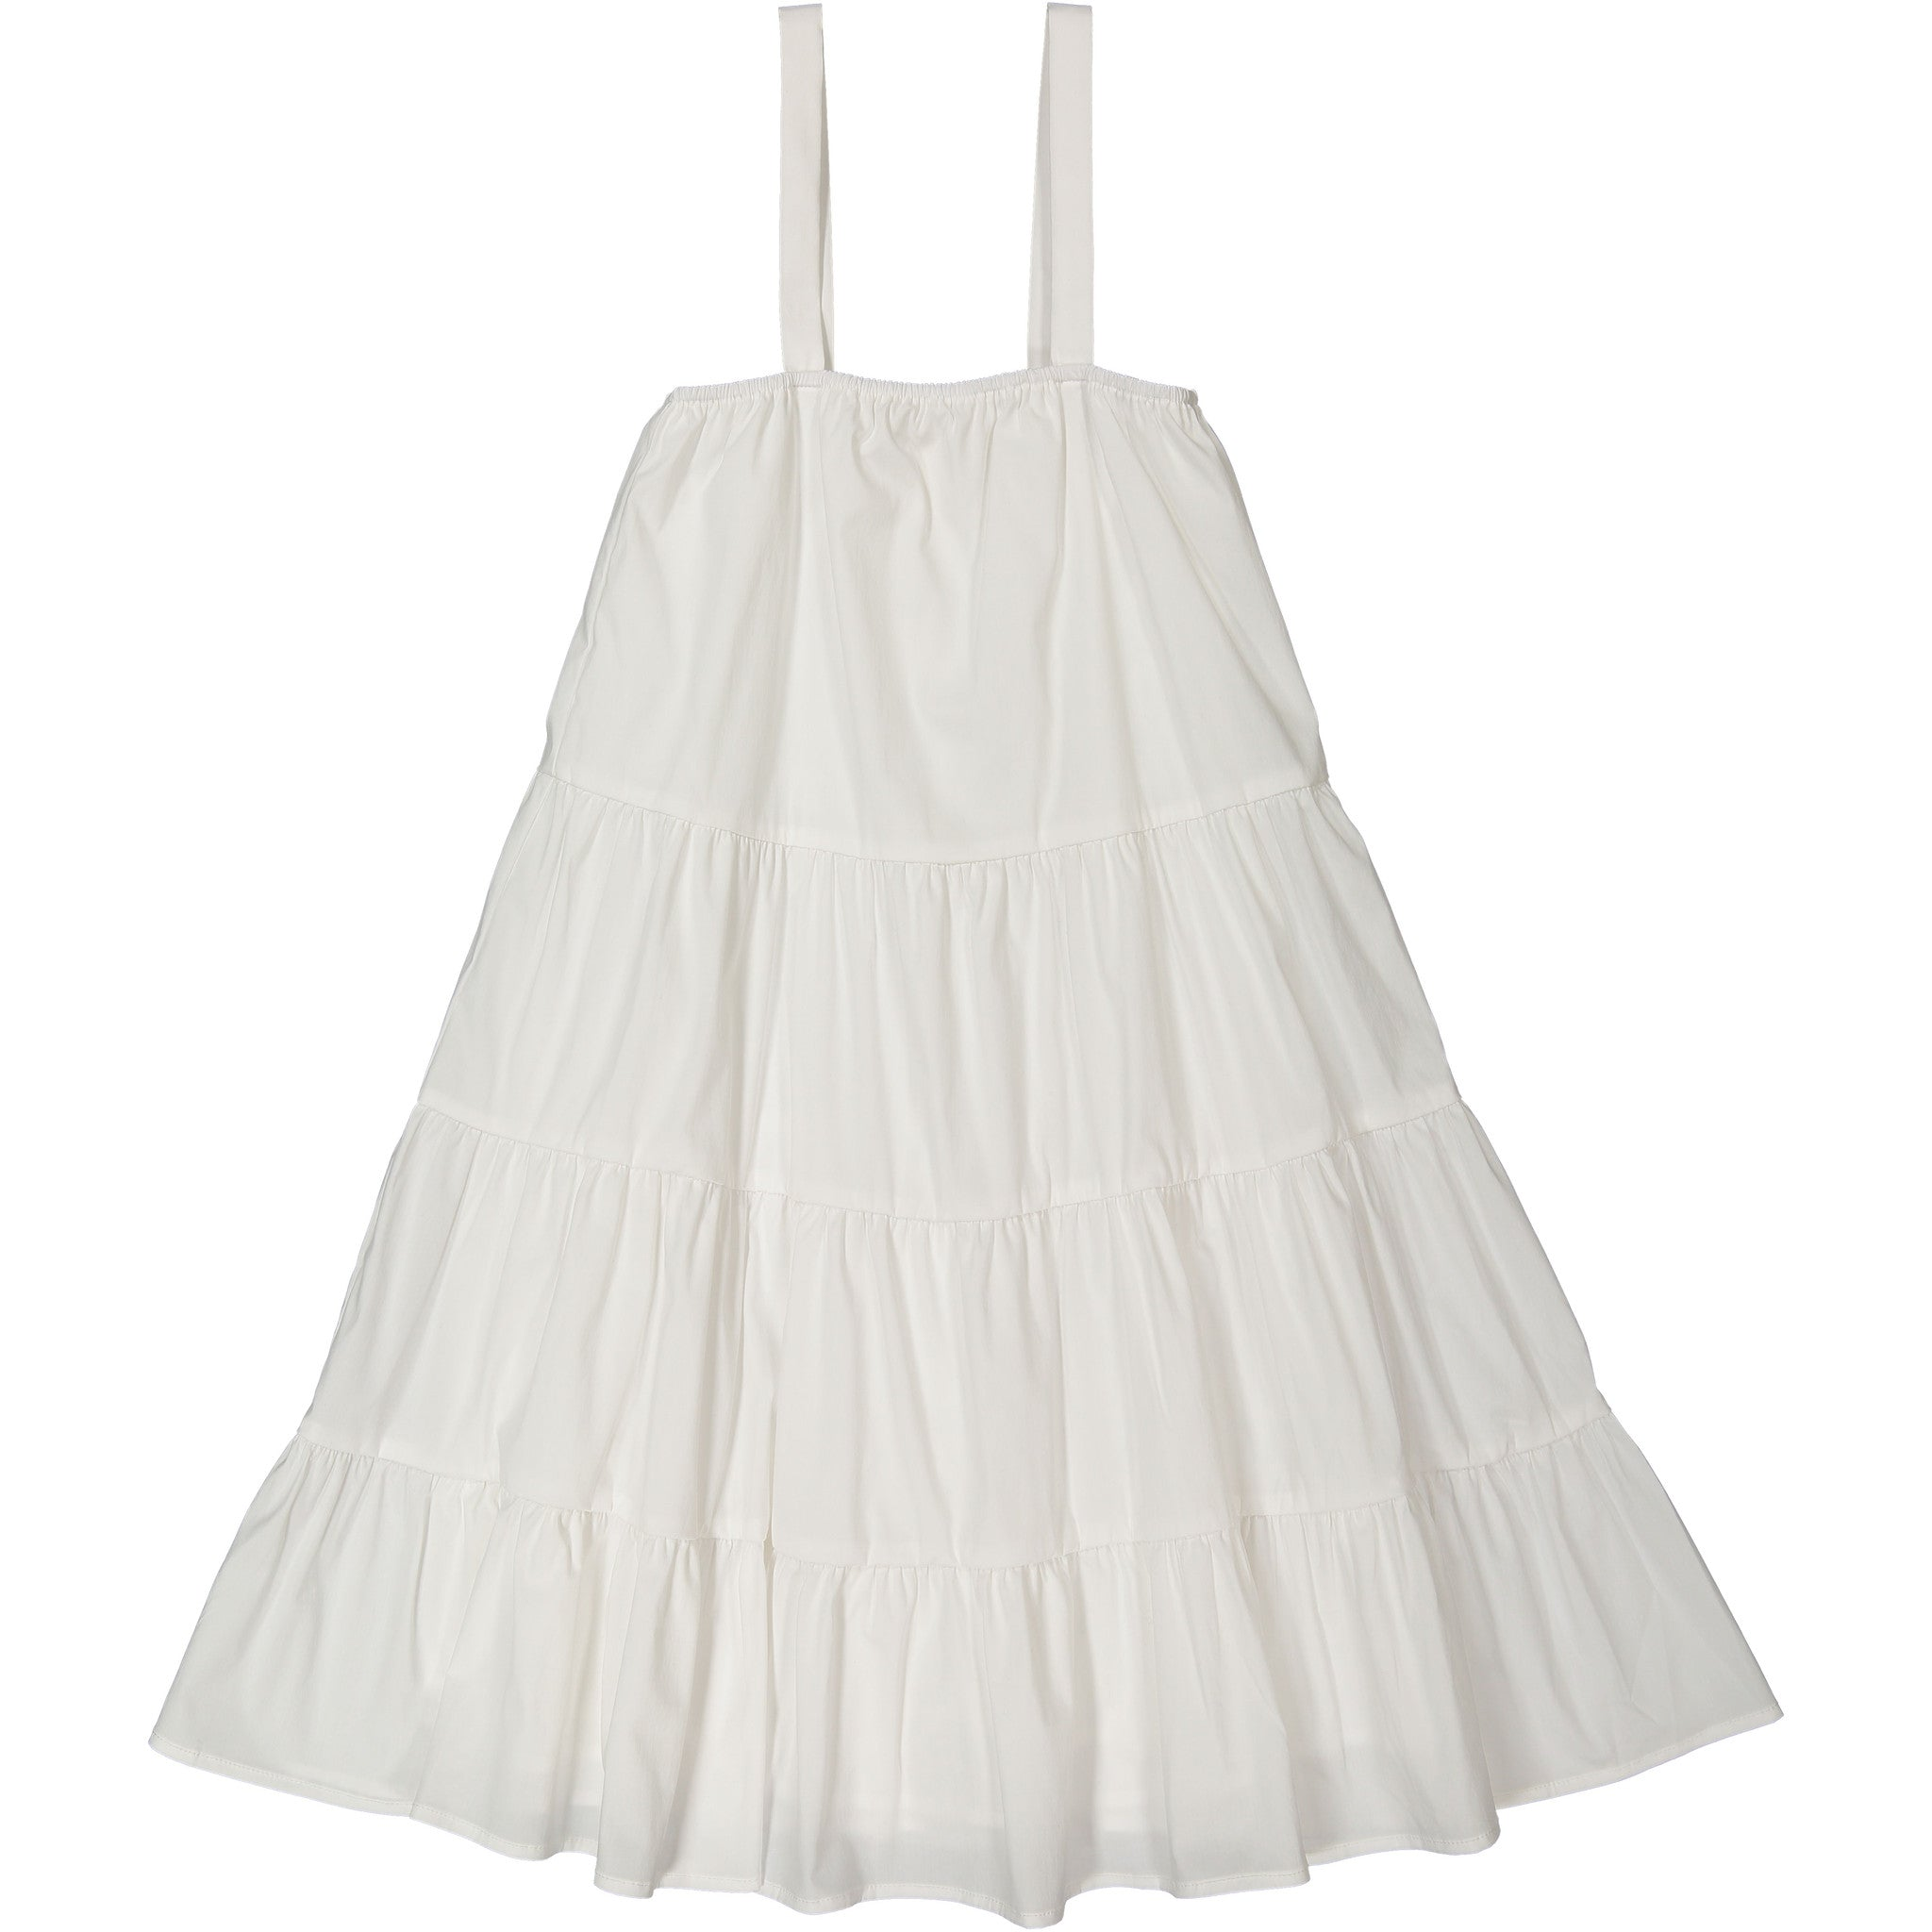 Ava & Lu The White Adrift Dress - Ladida